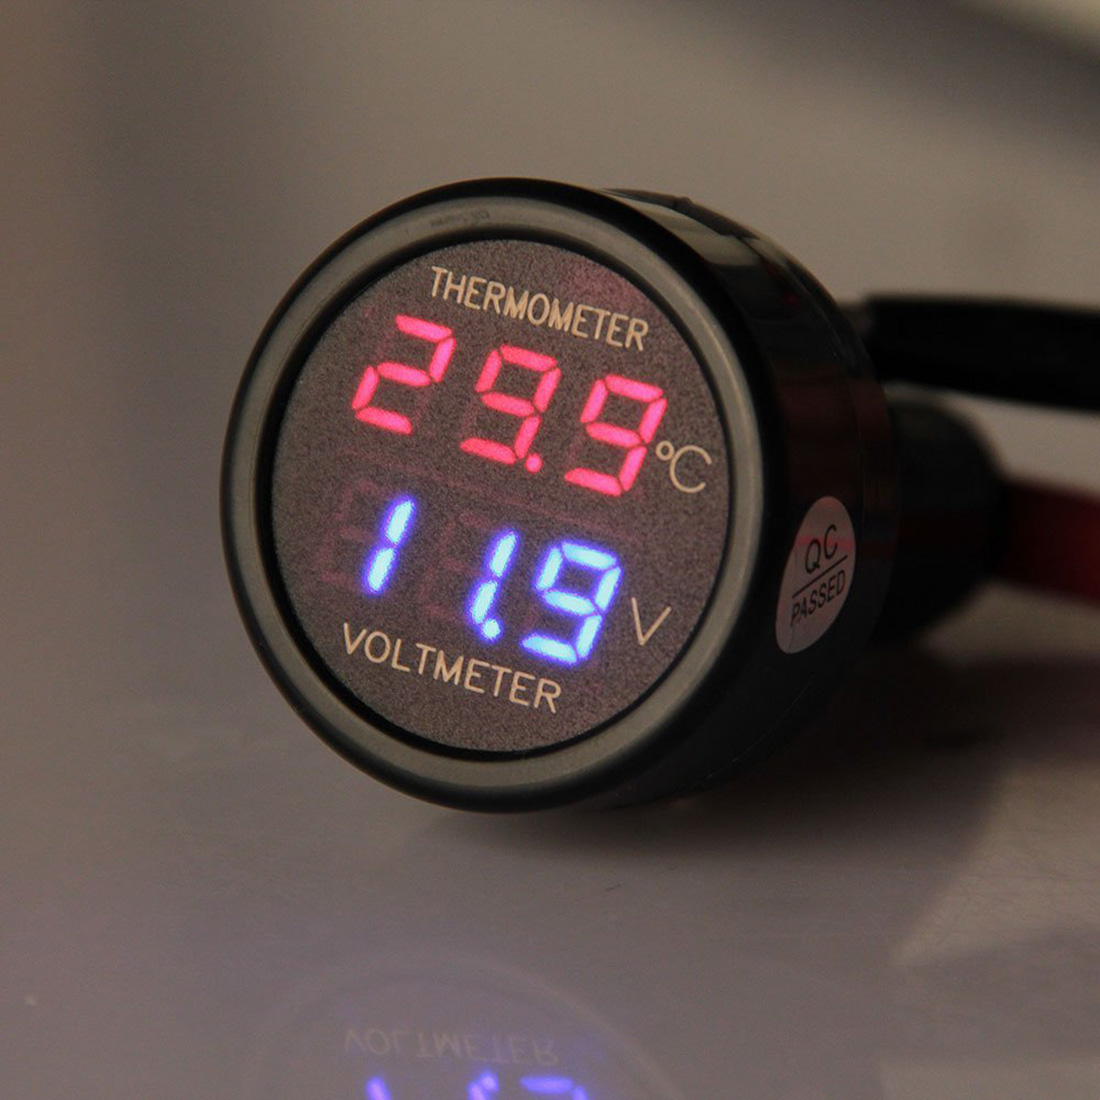 2 In 1 Red LED Car Cigarette Lighter Digital Voltmeter Thermometer Applies to 12/24V Universal Car SUV Truck Voltage Meter 3in1 car auto digital led thermometer usb charger cigarette voltmeter 12v 24v 3color g205m best quality